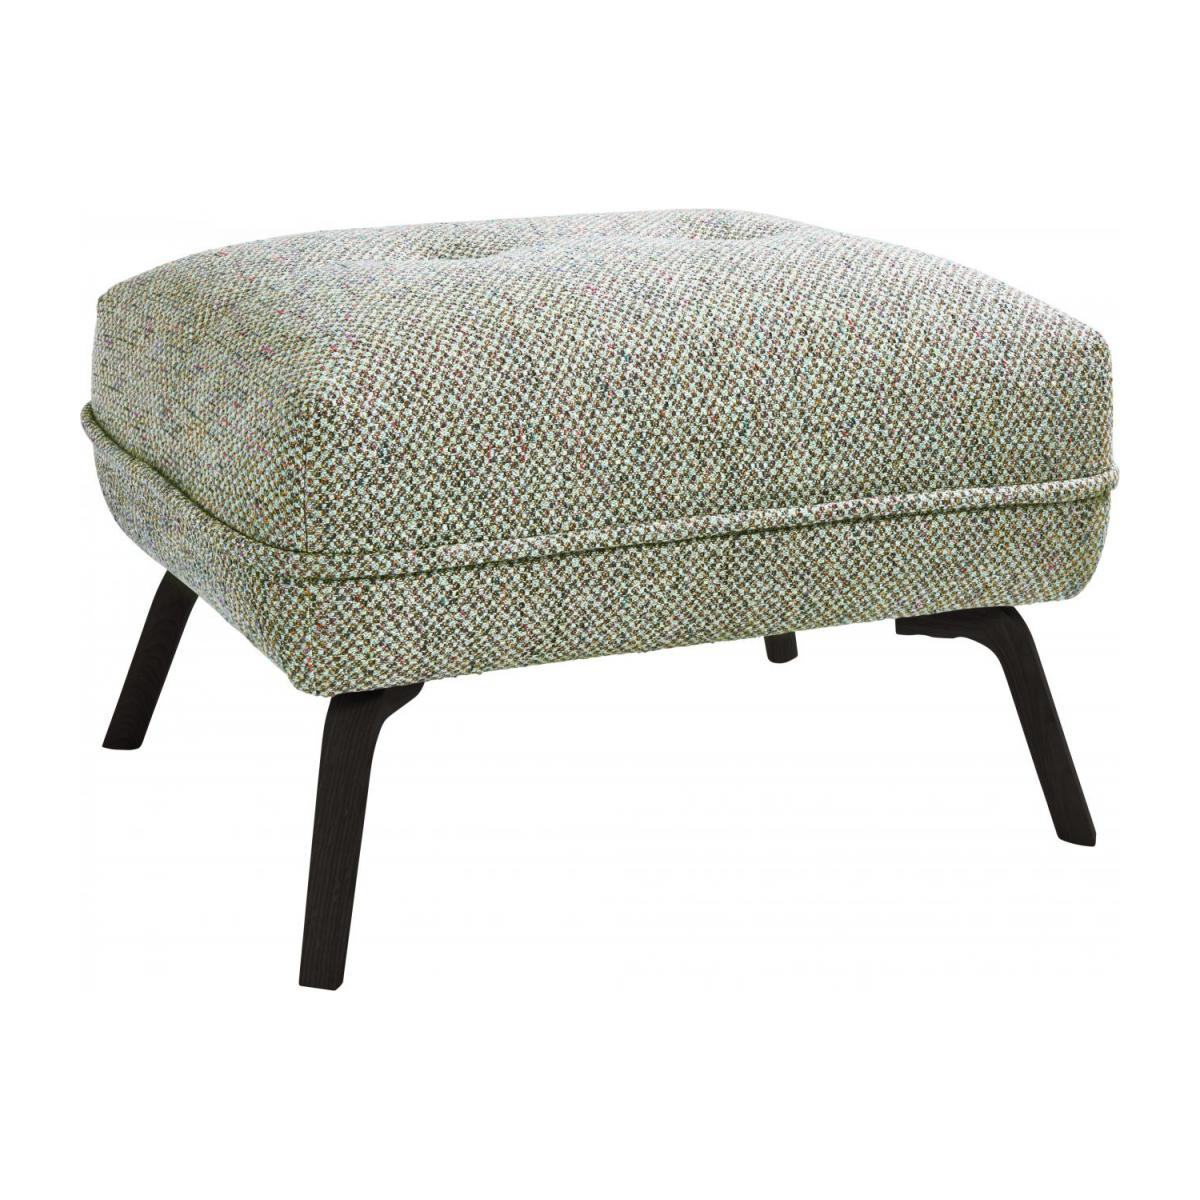 Footstool in Bellagio fabric, organic green and dark legs n°1